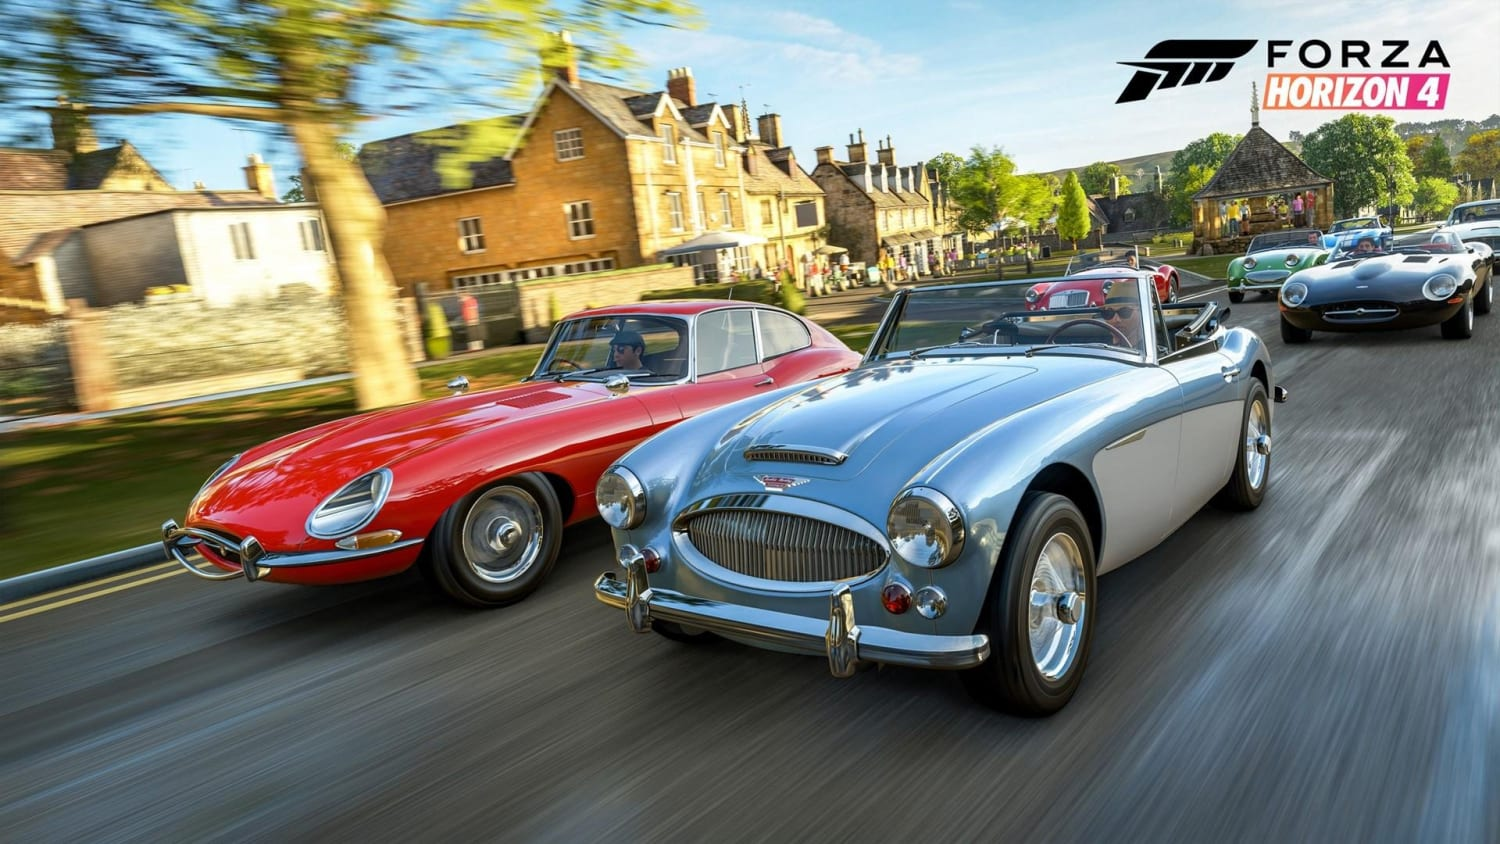 Fh4 Car List forza horizon 4 best cars: the top 10 you need